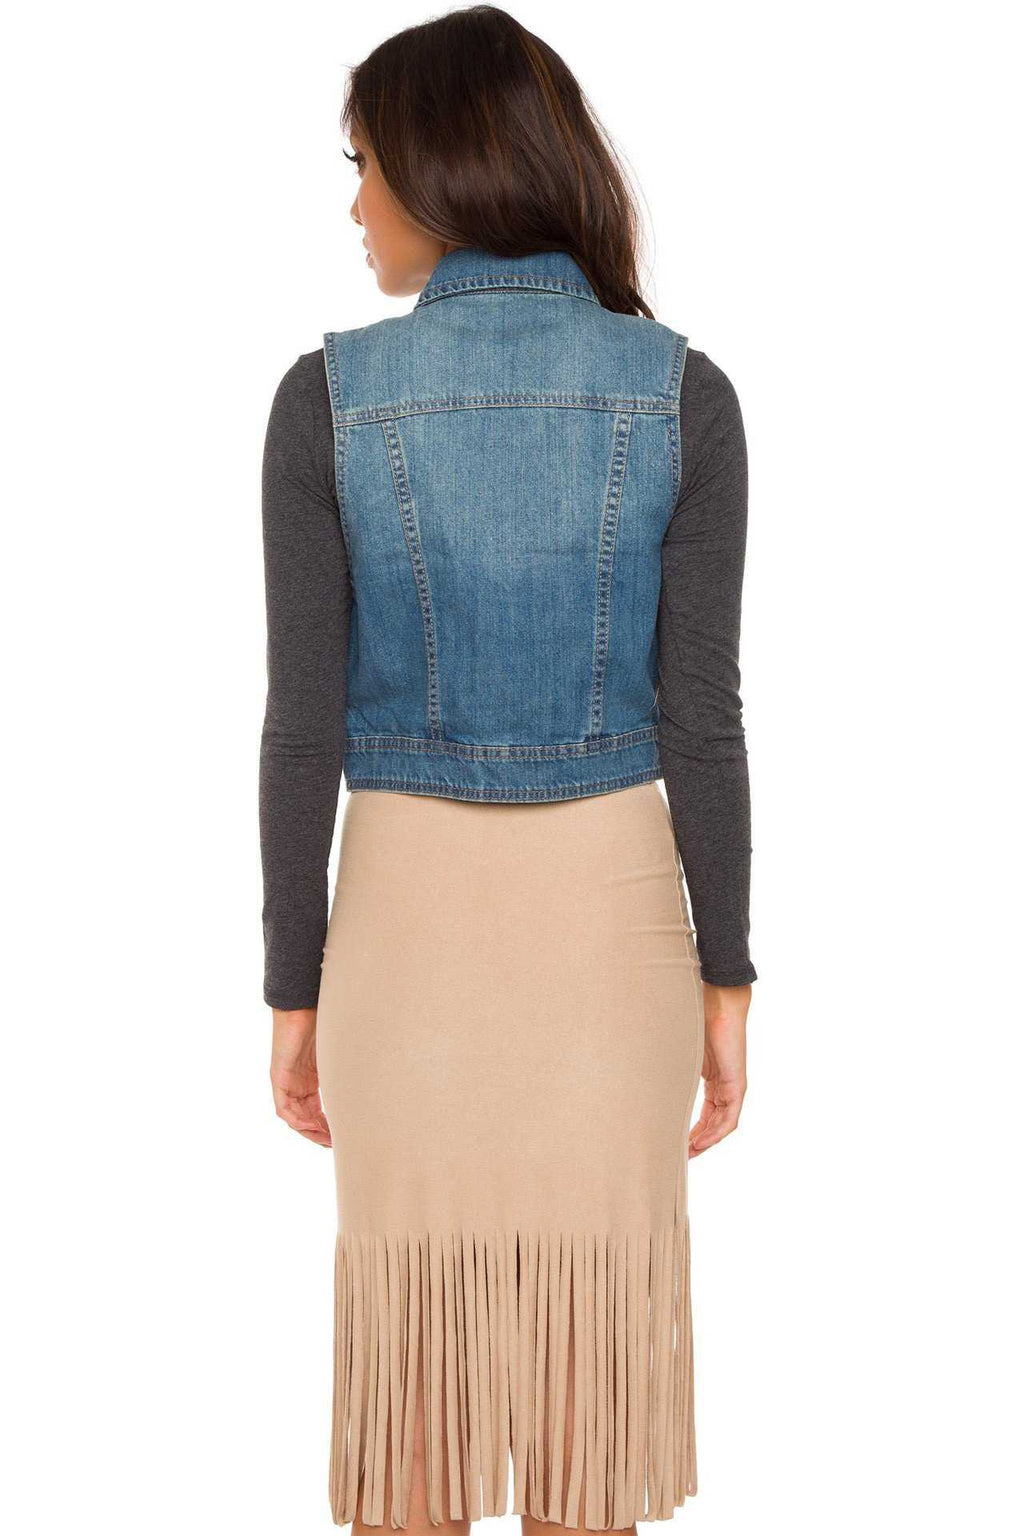 Tops - Free And Easy Denim Vest